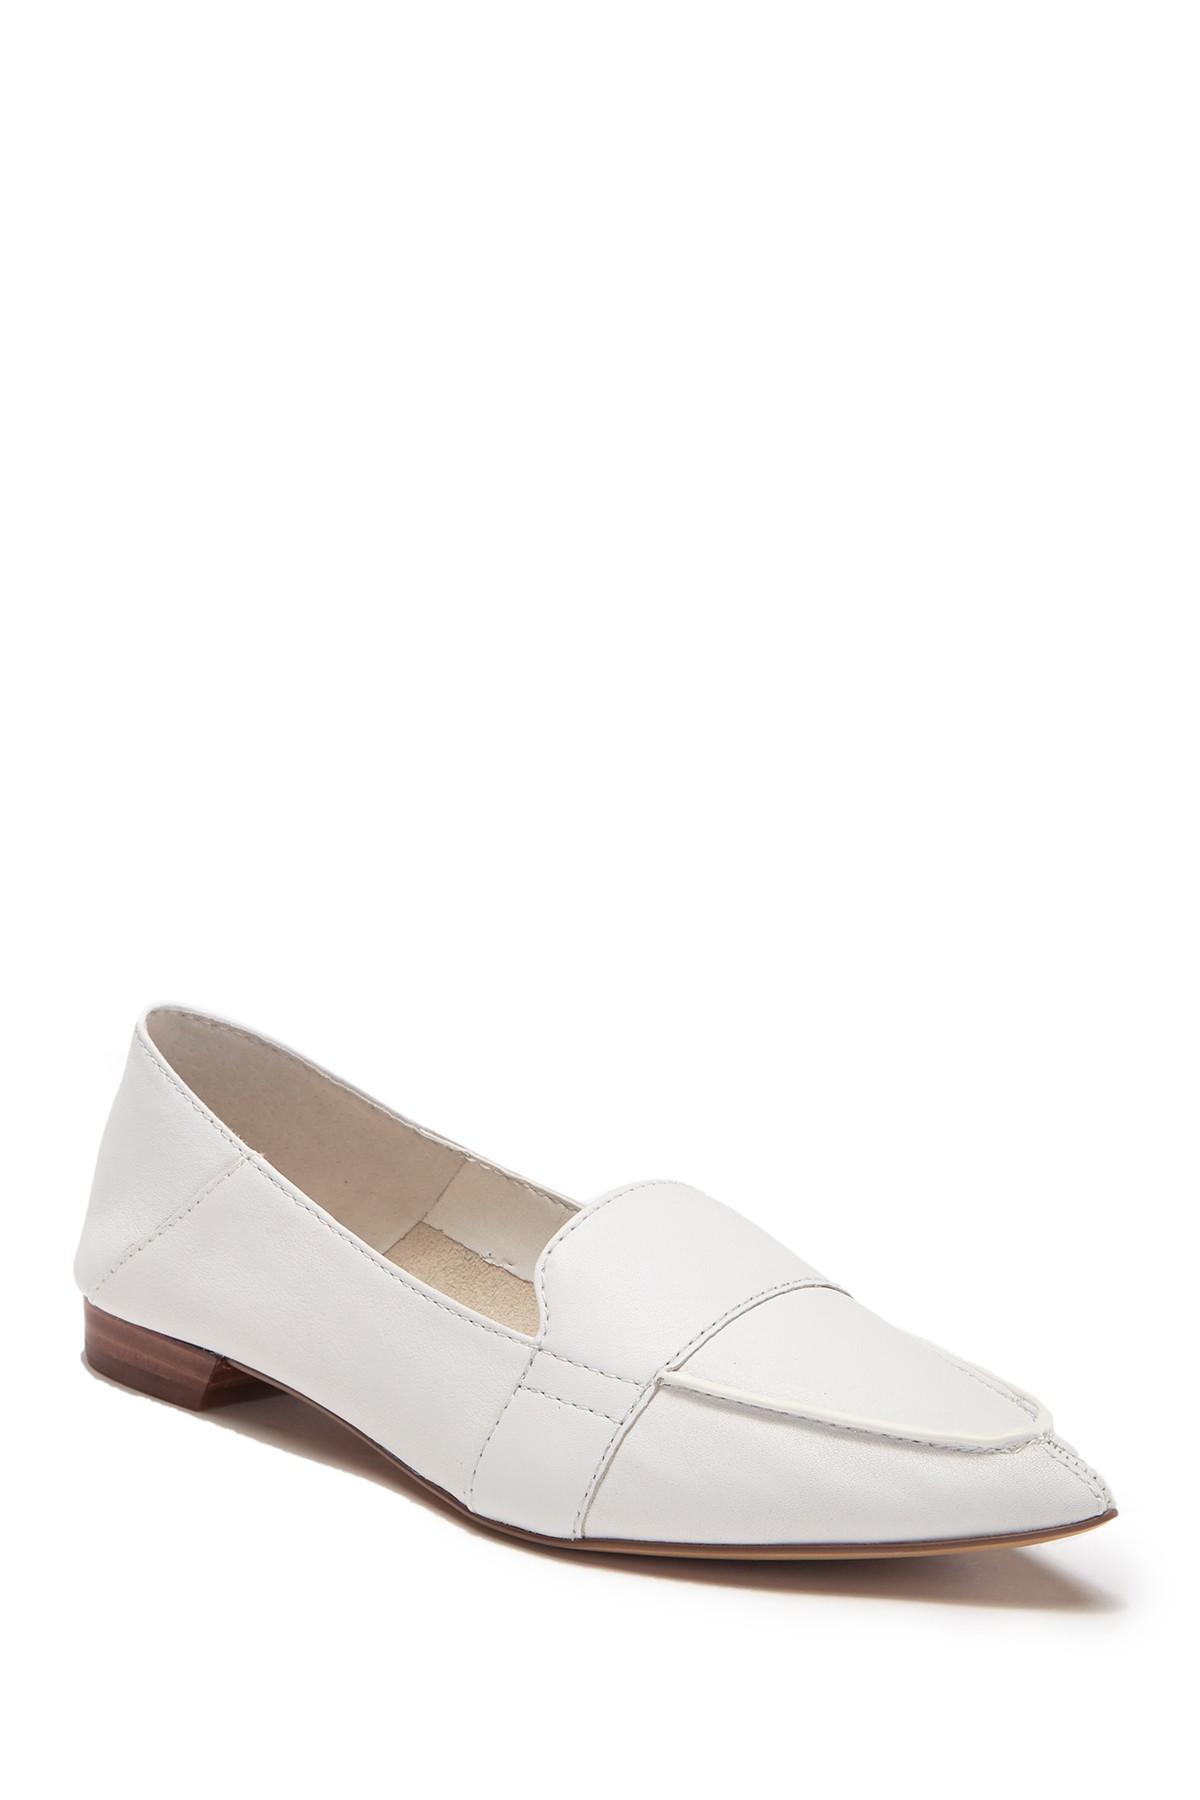 25d94606f49 Lyst - Vince Camuto Maita Pointed Toe Leather Loafer in White